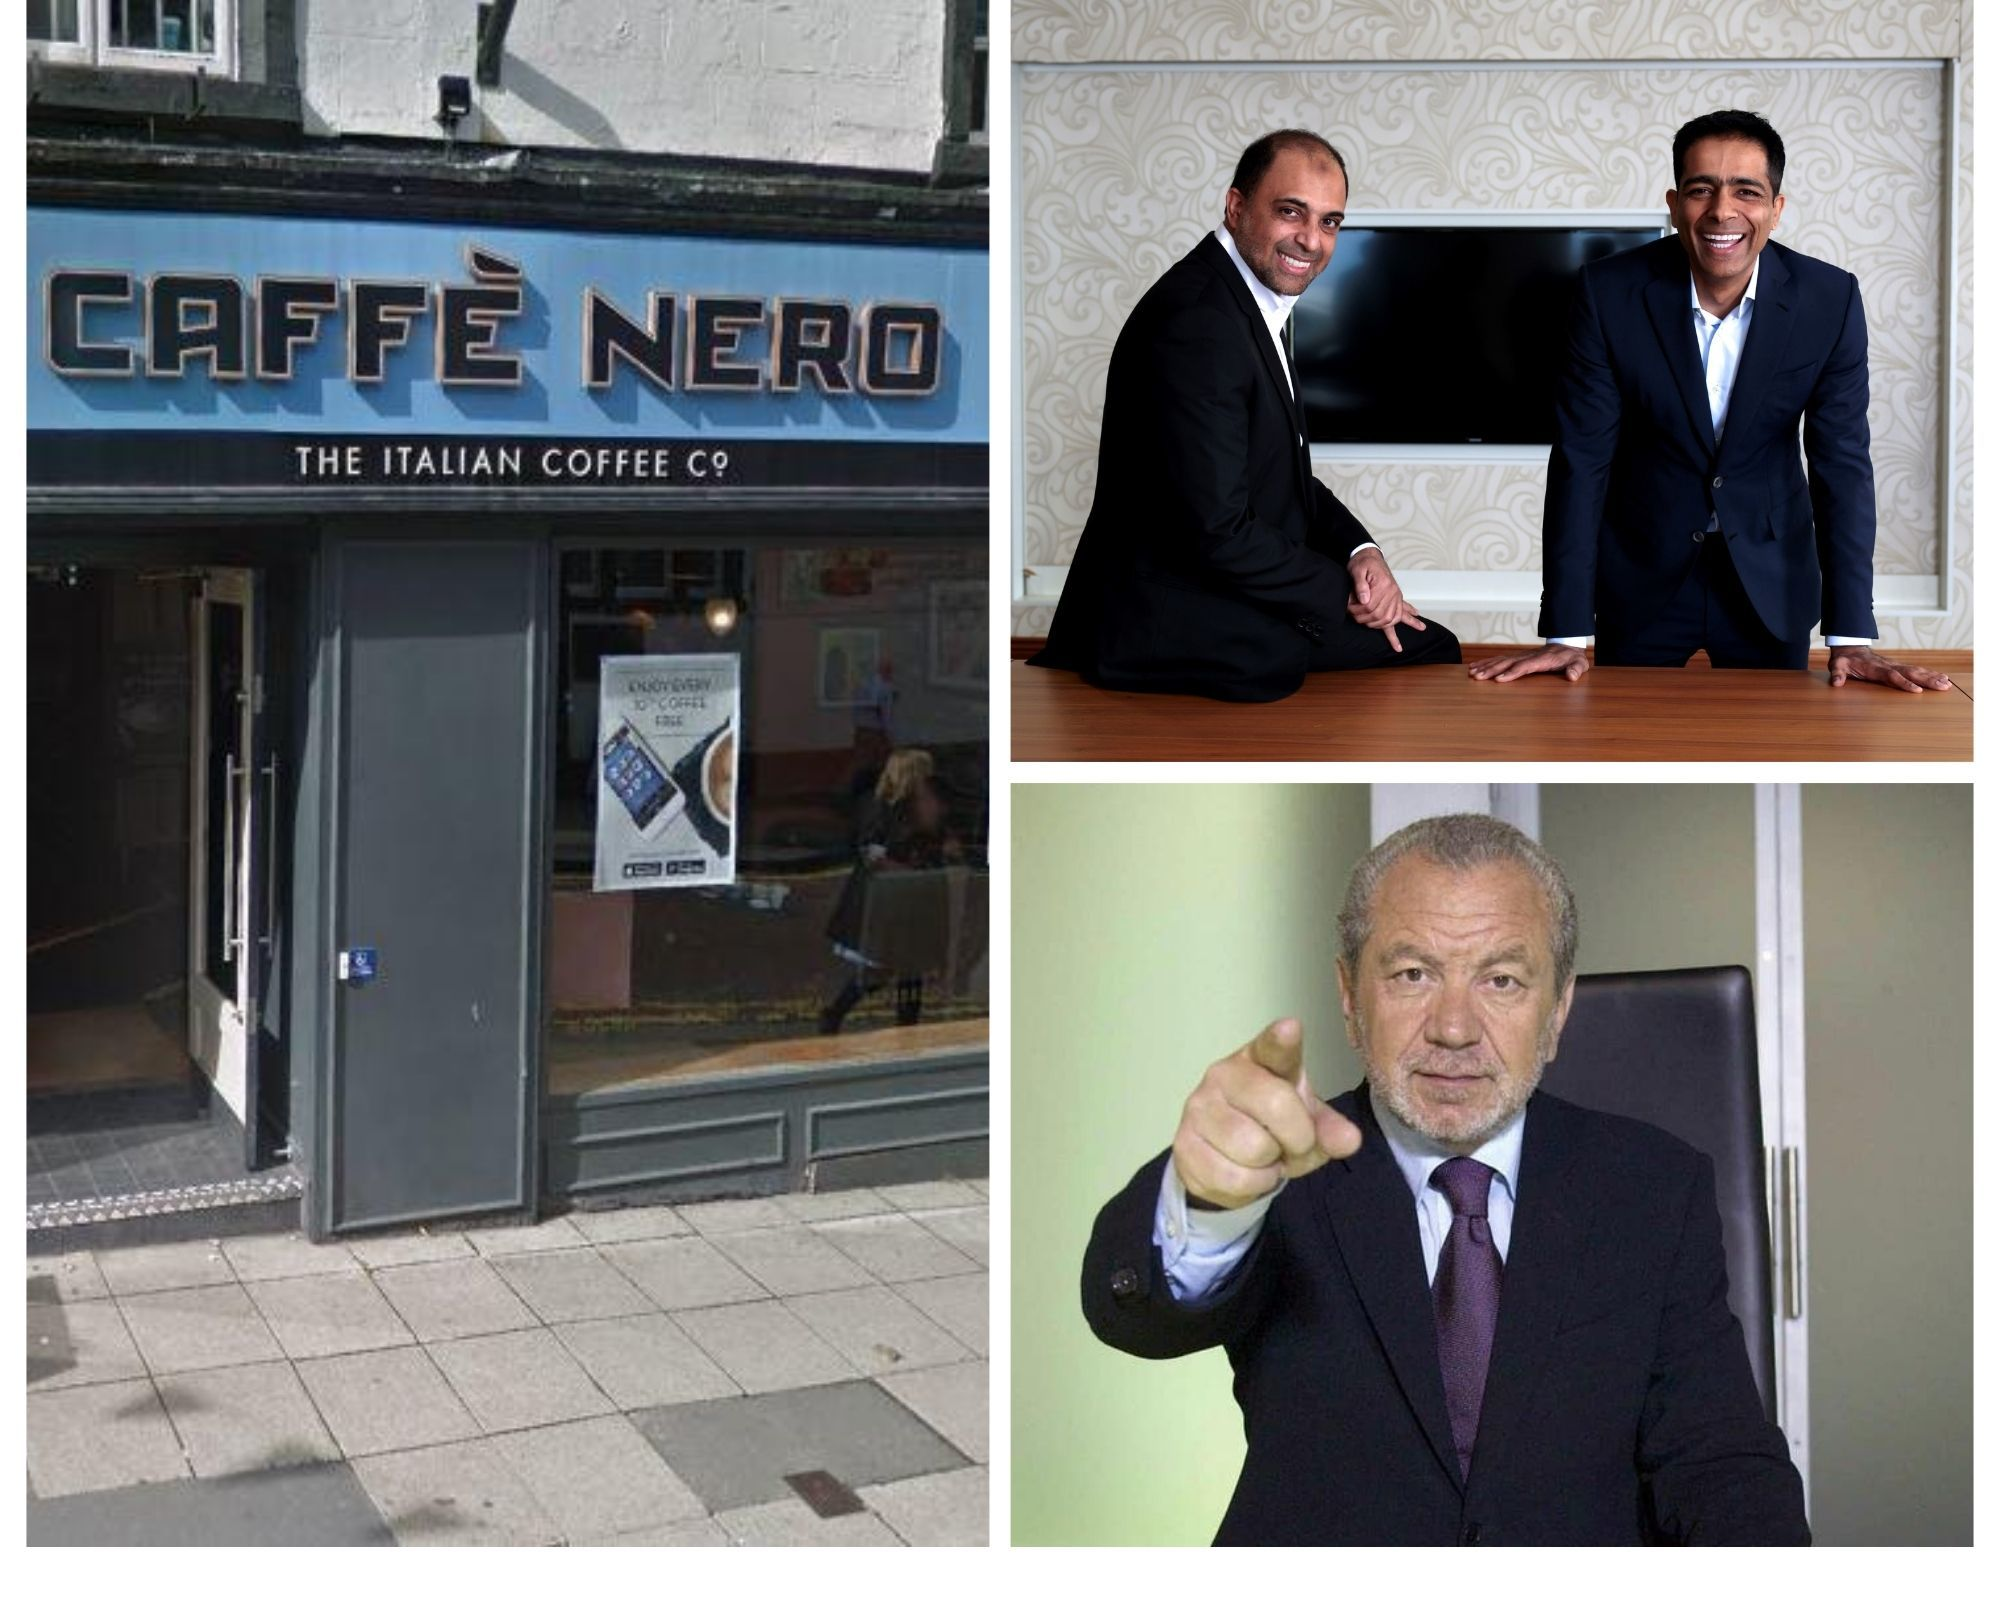 Issa brothers' Caffé Nero takeover hangs in the balance as legal move falters